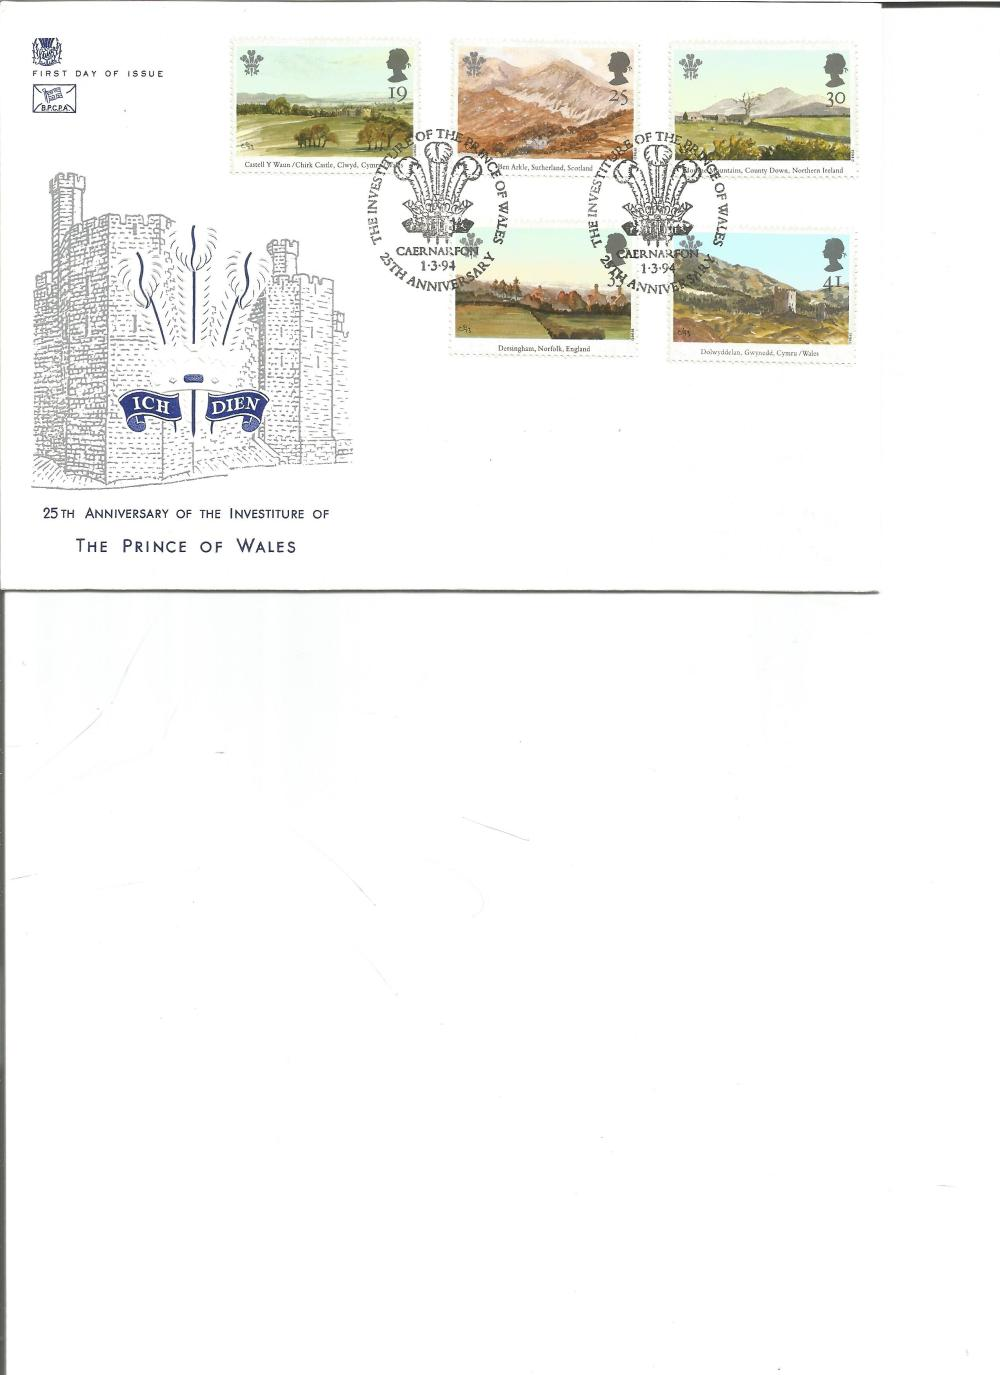 FDC 25TH Anniversary of the Investiture of The Prince of Wales c/w set of five commemorative